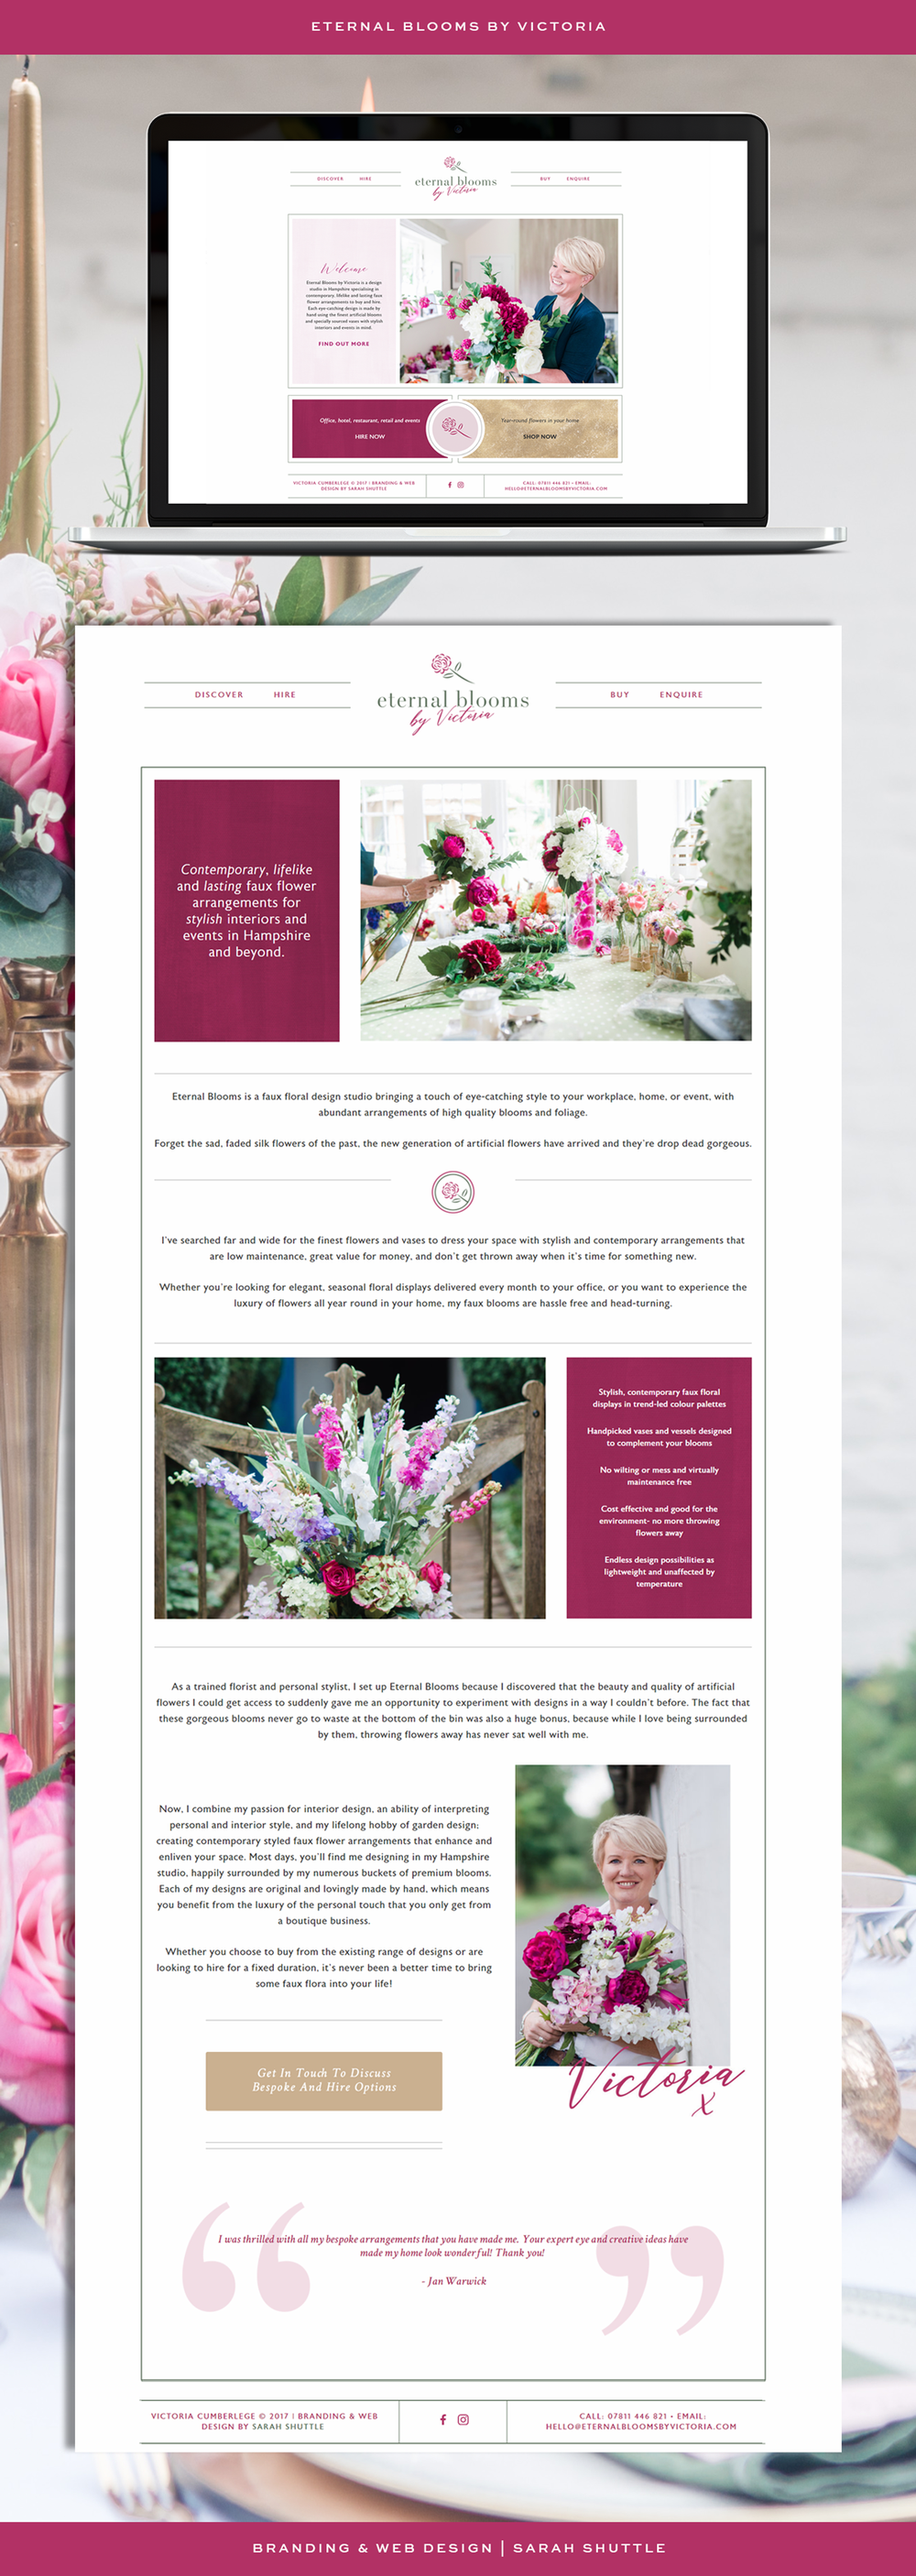 Branding, brand design, web design, brand styling for Eternal Blooms by Victoria. Brand board, faux florist, floral design, luxury florist, feminine branding and custom website design, wedding professional, luxury wedding business branding, female entrepreneur, high-end service branding, luxury web design, feminine web design. Pink, green, gold colour palette. Flowers, floristry, logo design, submark, icon, patterns and textures, brand photography.